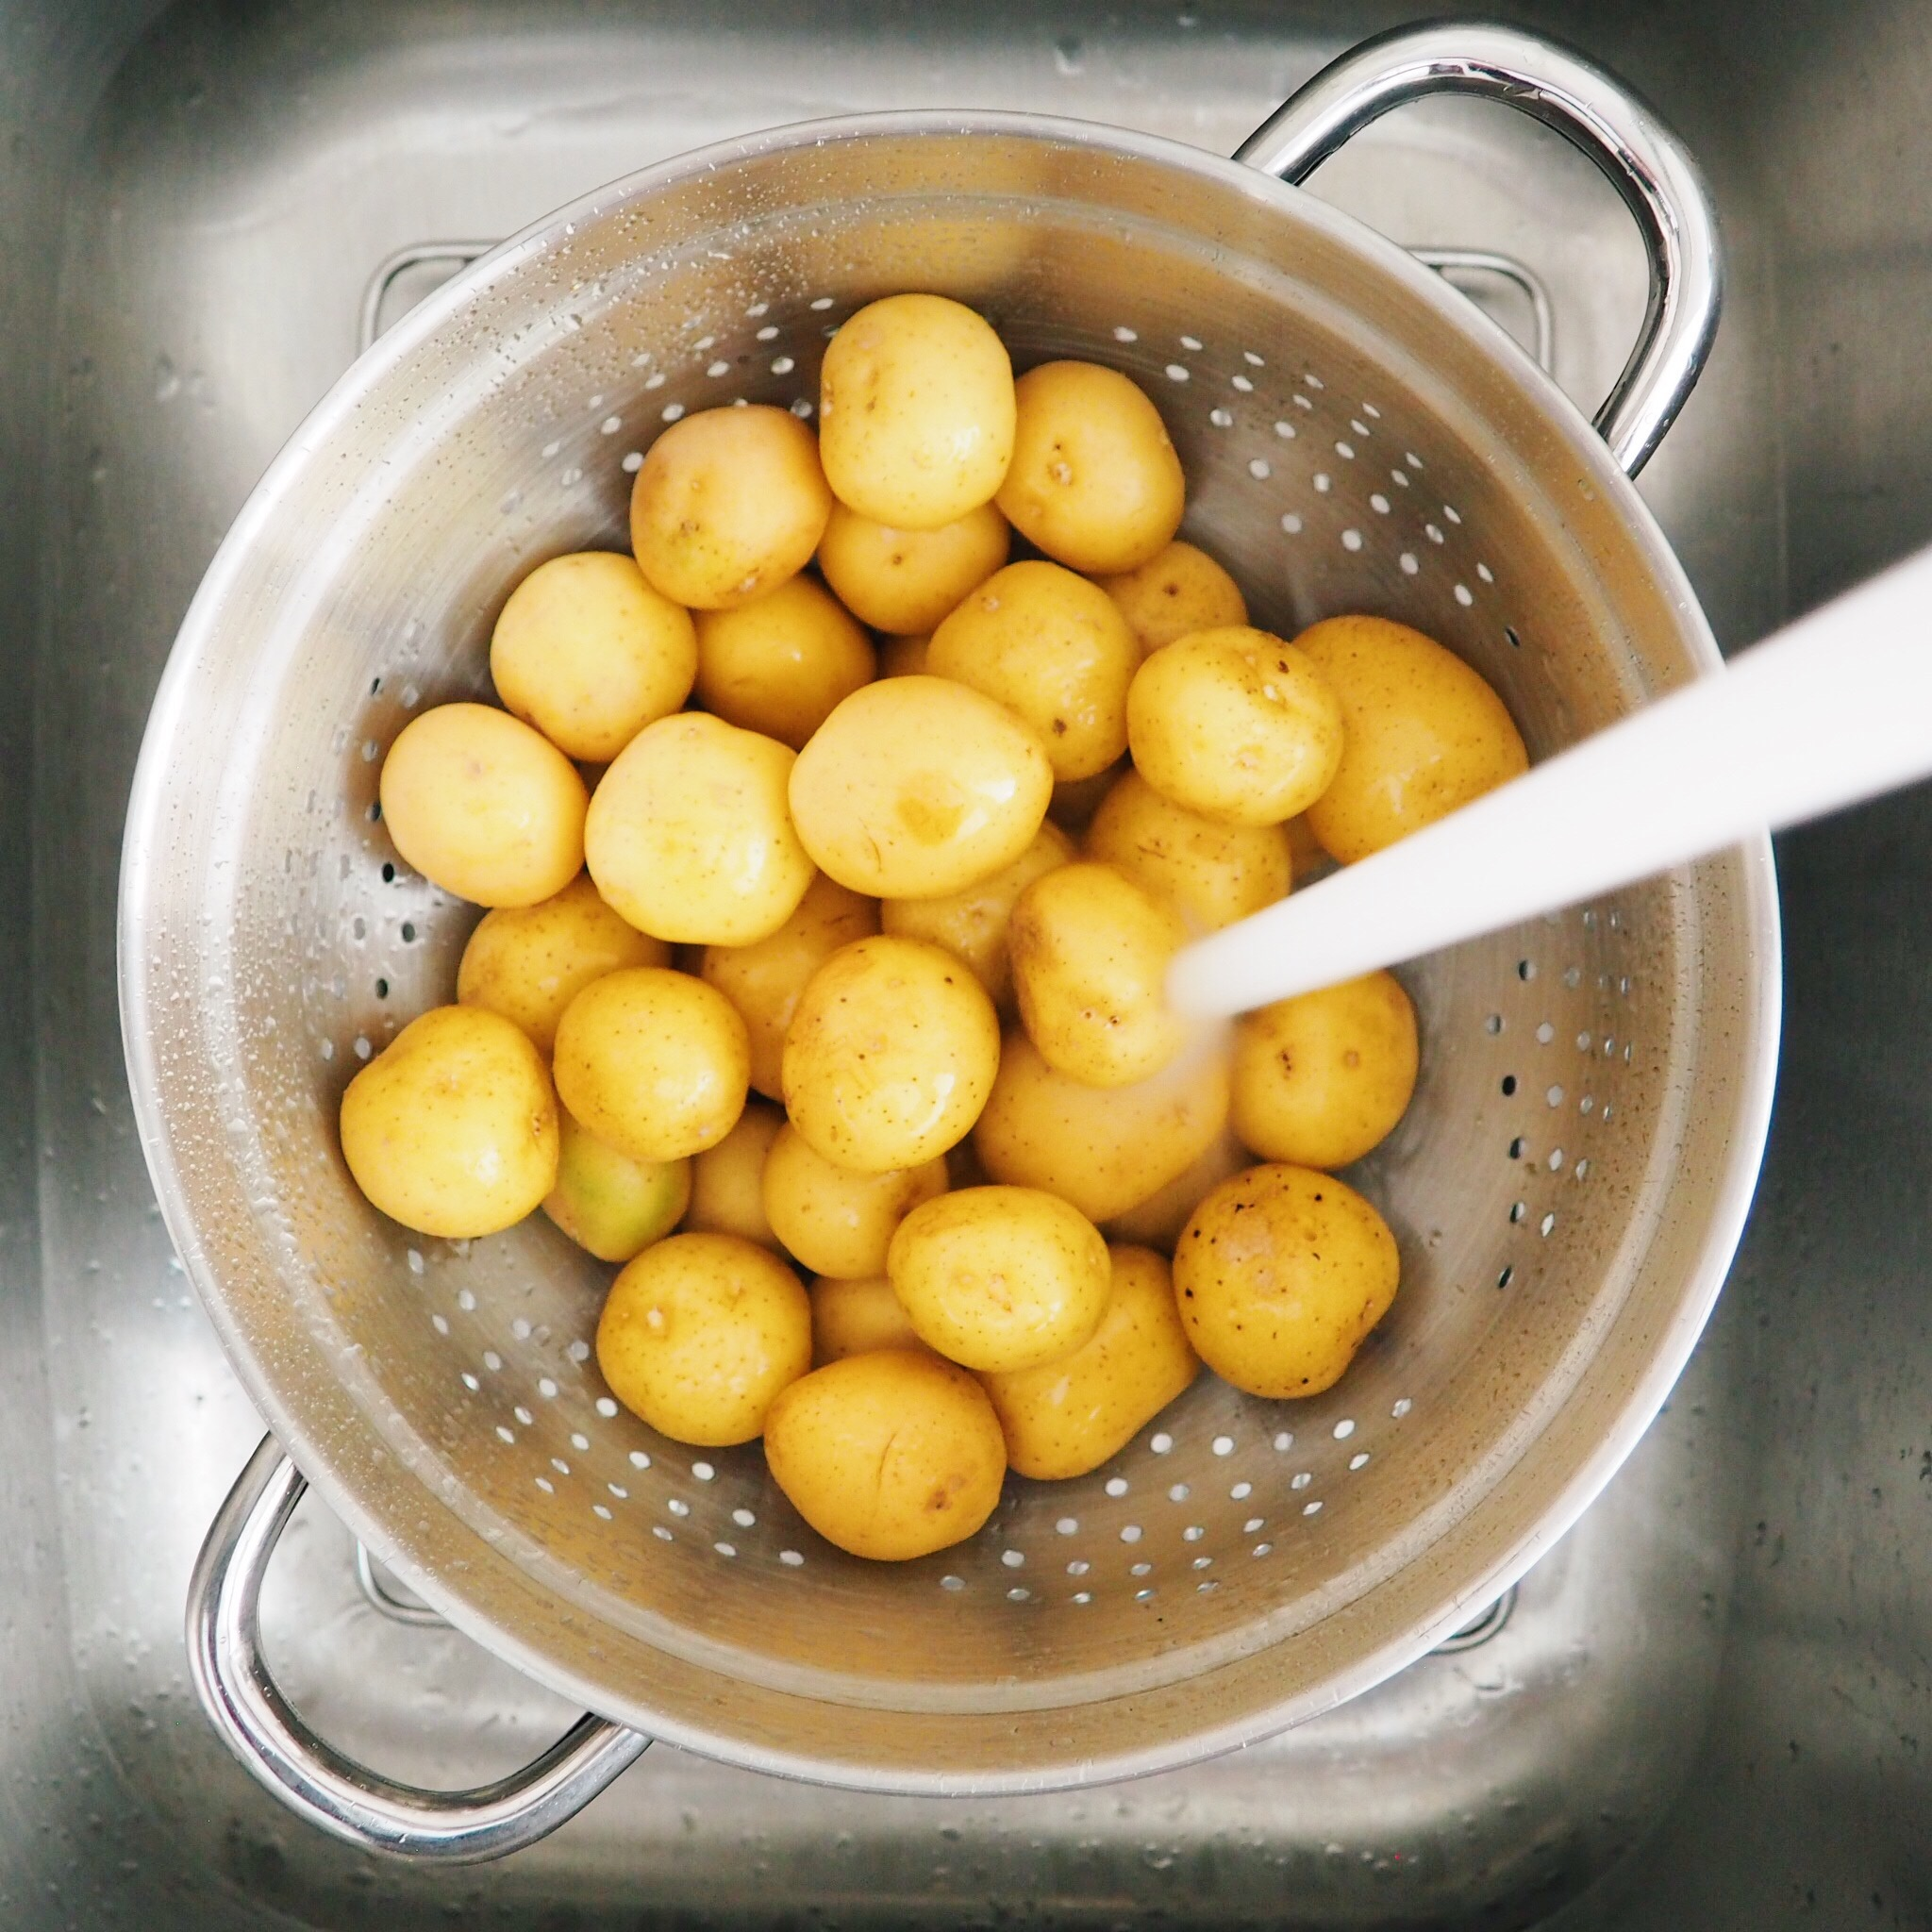 Step 1 - Wash your potatoes.